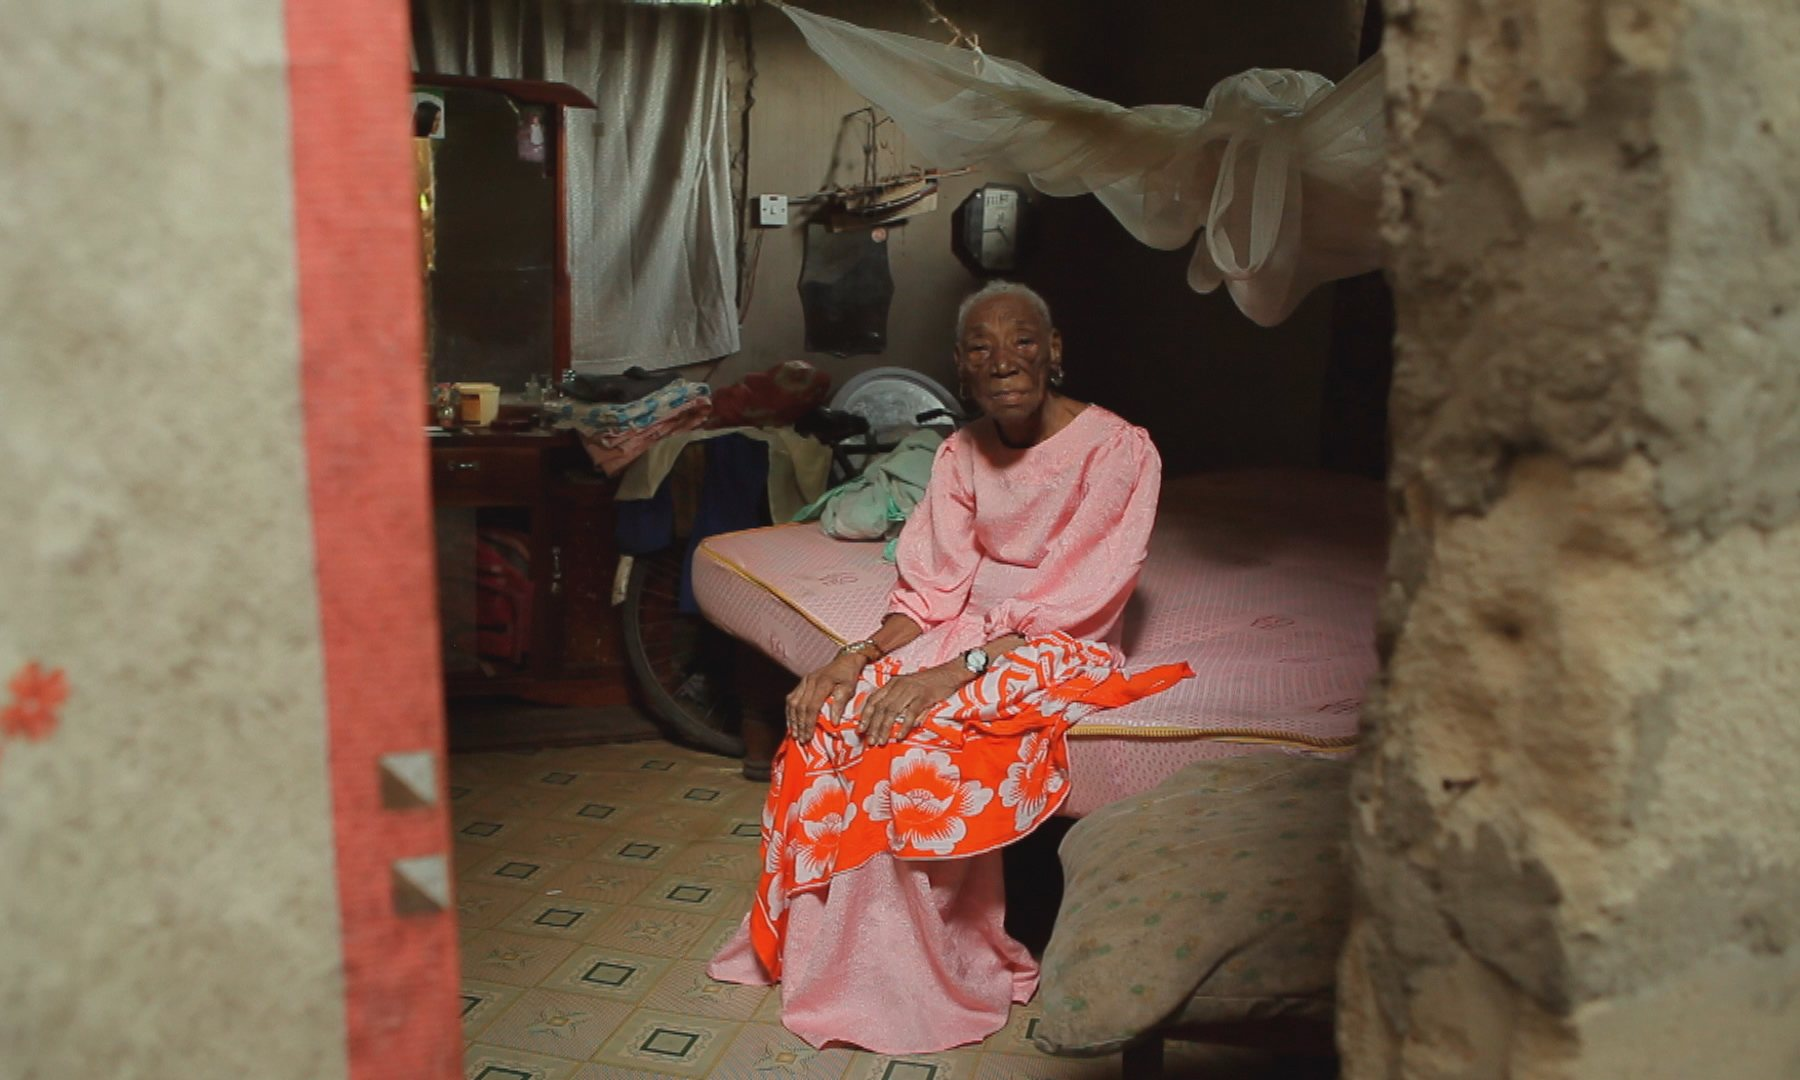 Kidude when she was found in Baraka's village home, where she had been held hostage. Photograph: Andy Jones